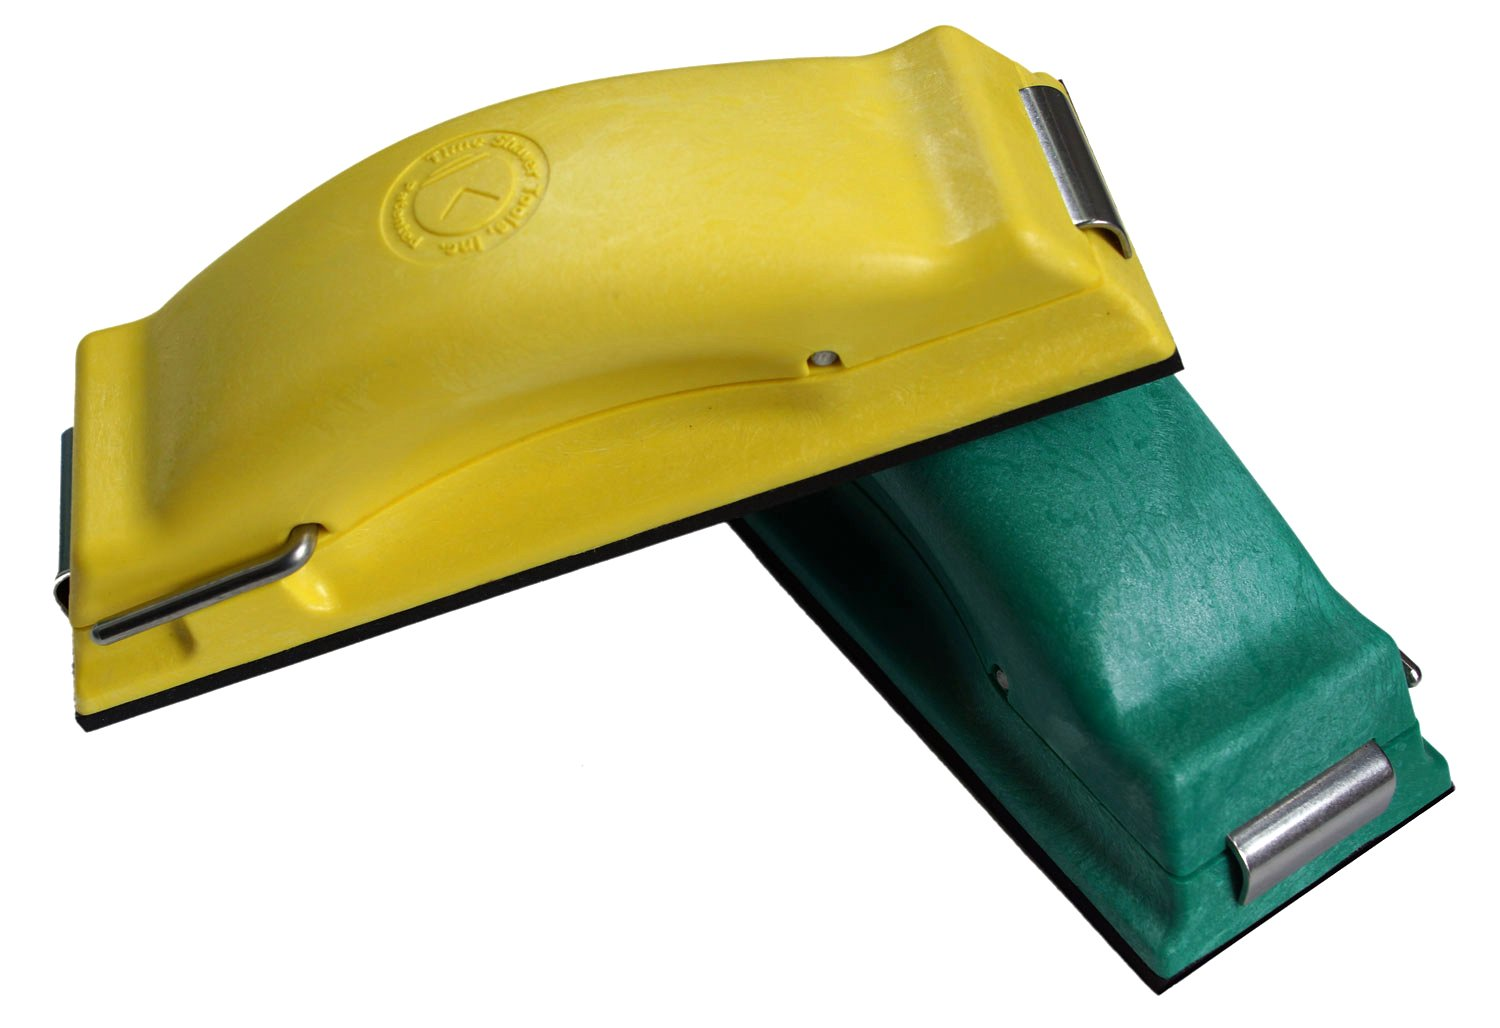 Time Shaver Tools Preppin' Weapon Ergonomic Sanding Block, for Wet and Dry Sanding! Easy to Load, Multi-purpose Plain Paper Sander! Set of 2 Color Coded Hand Sanders (Green and Yellow)